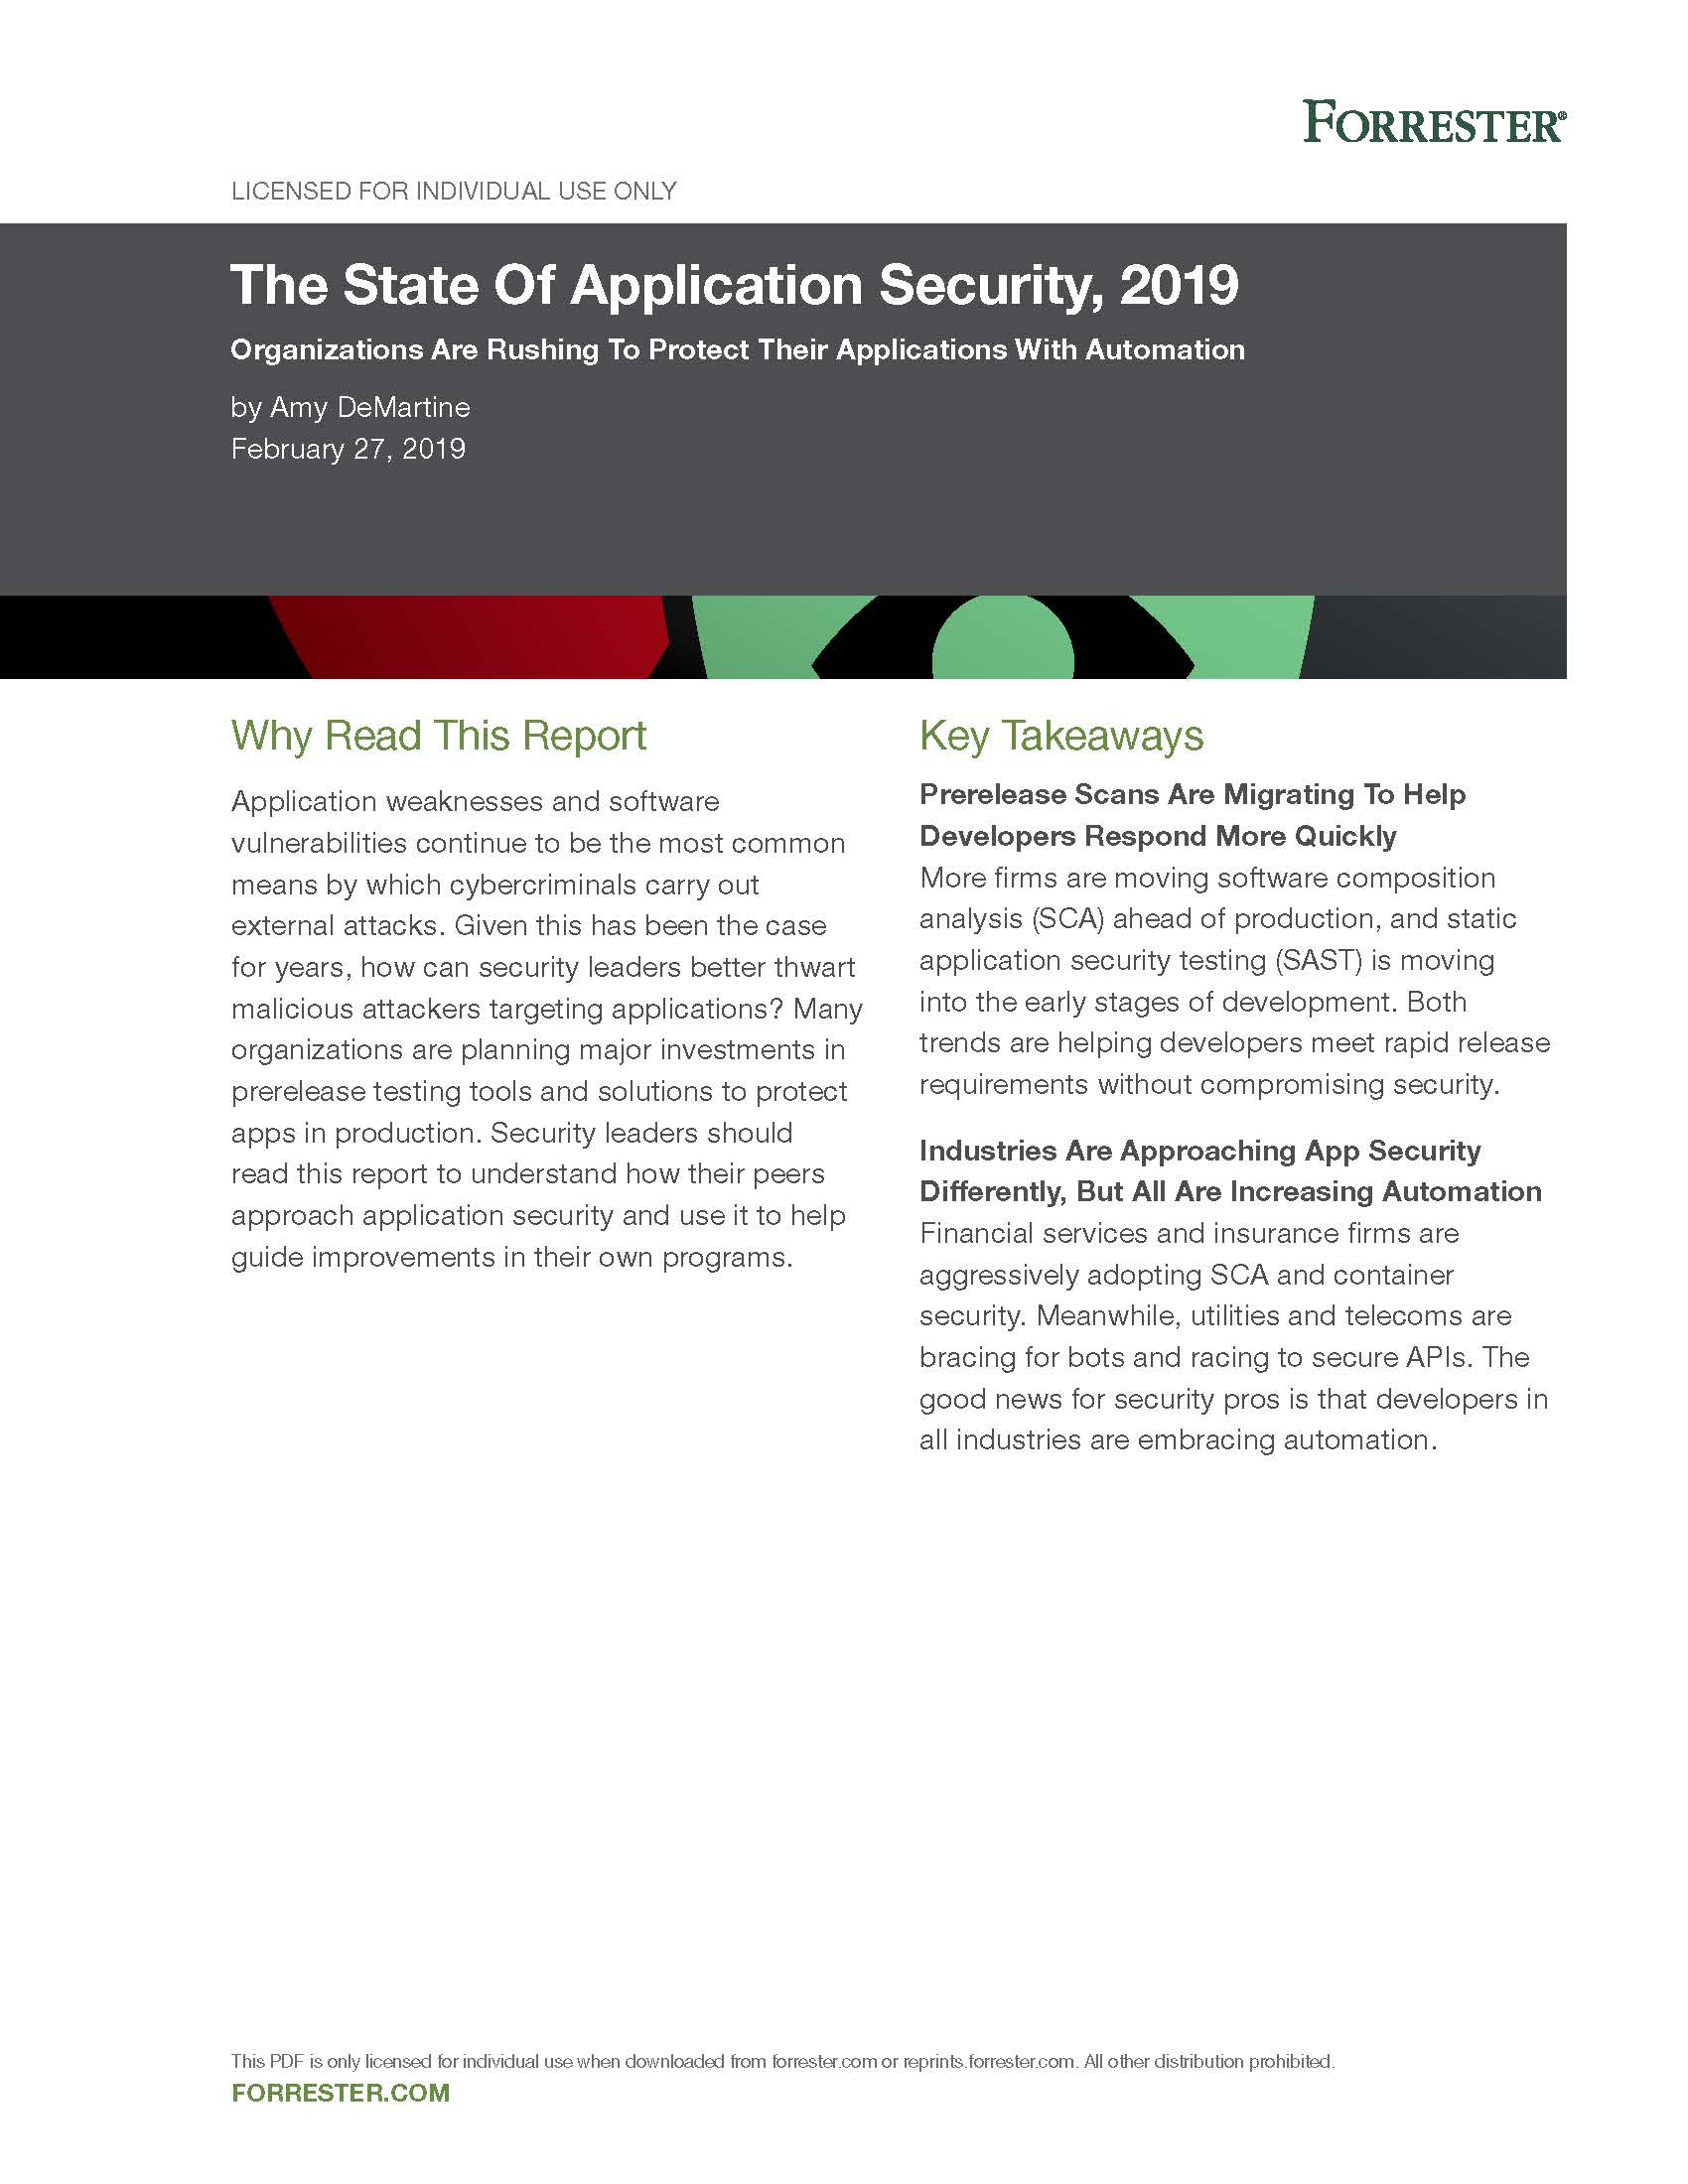 The State Of Application Security, 2019 Forrester_Page_01